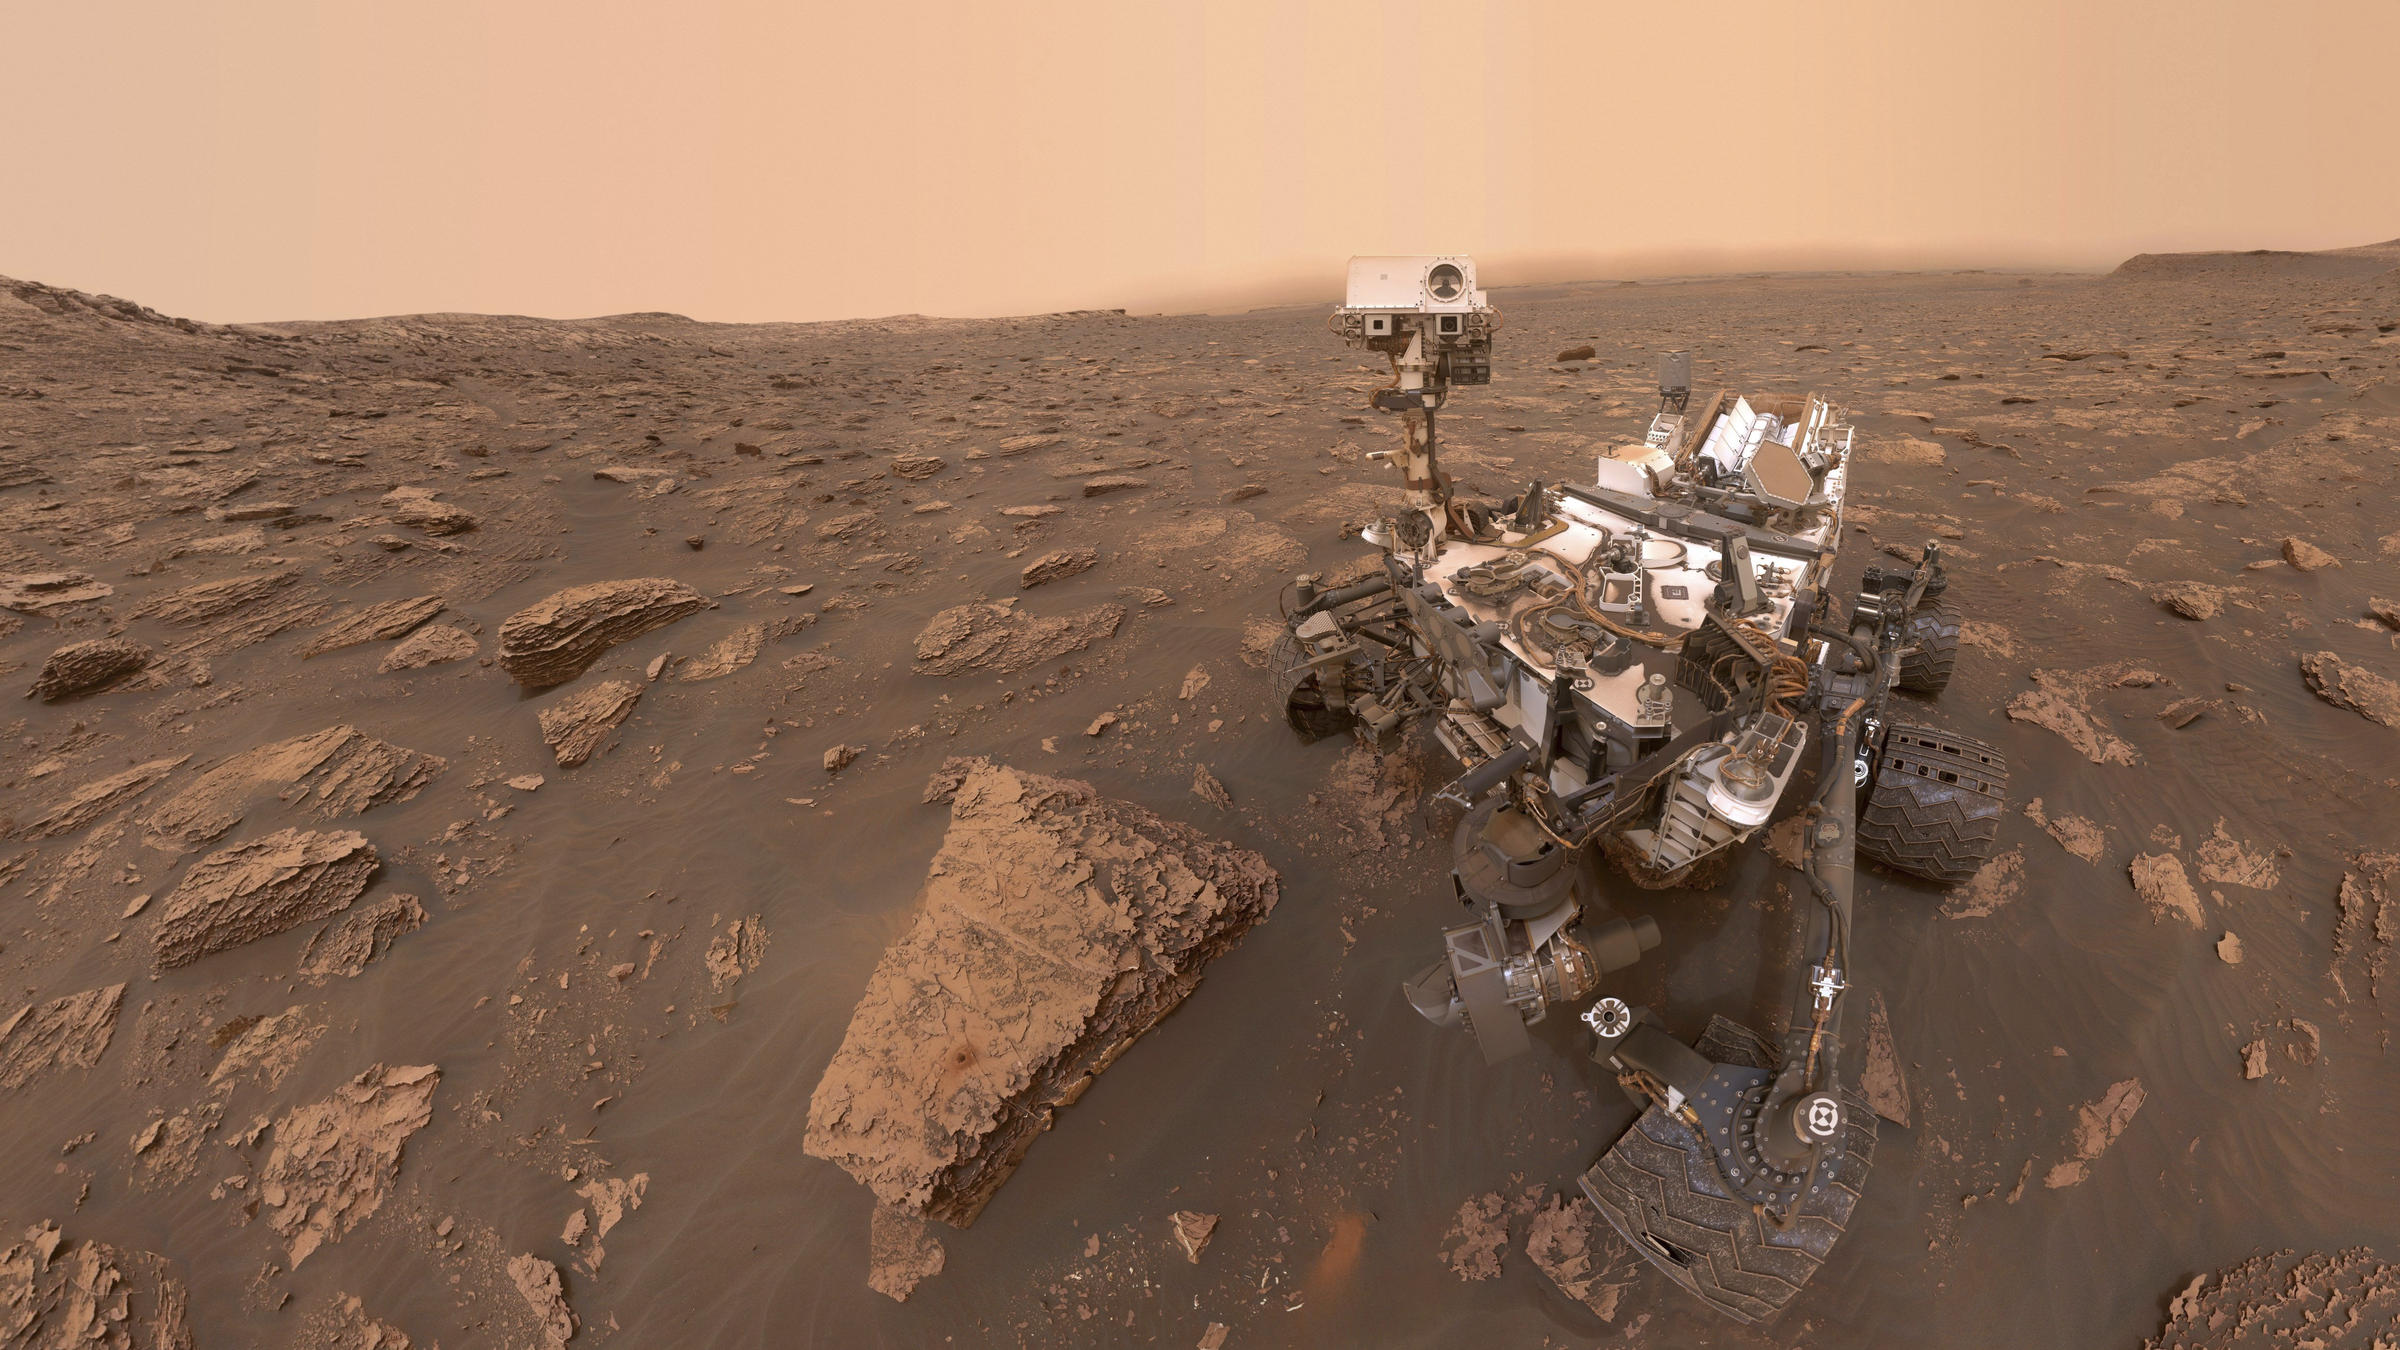 NASA's Mars Rover Is Now Facing A 'Planet-Encircling' Dust Storm